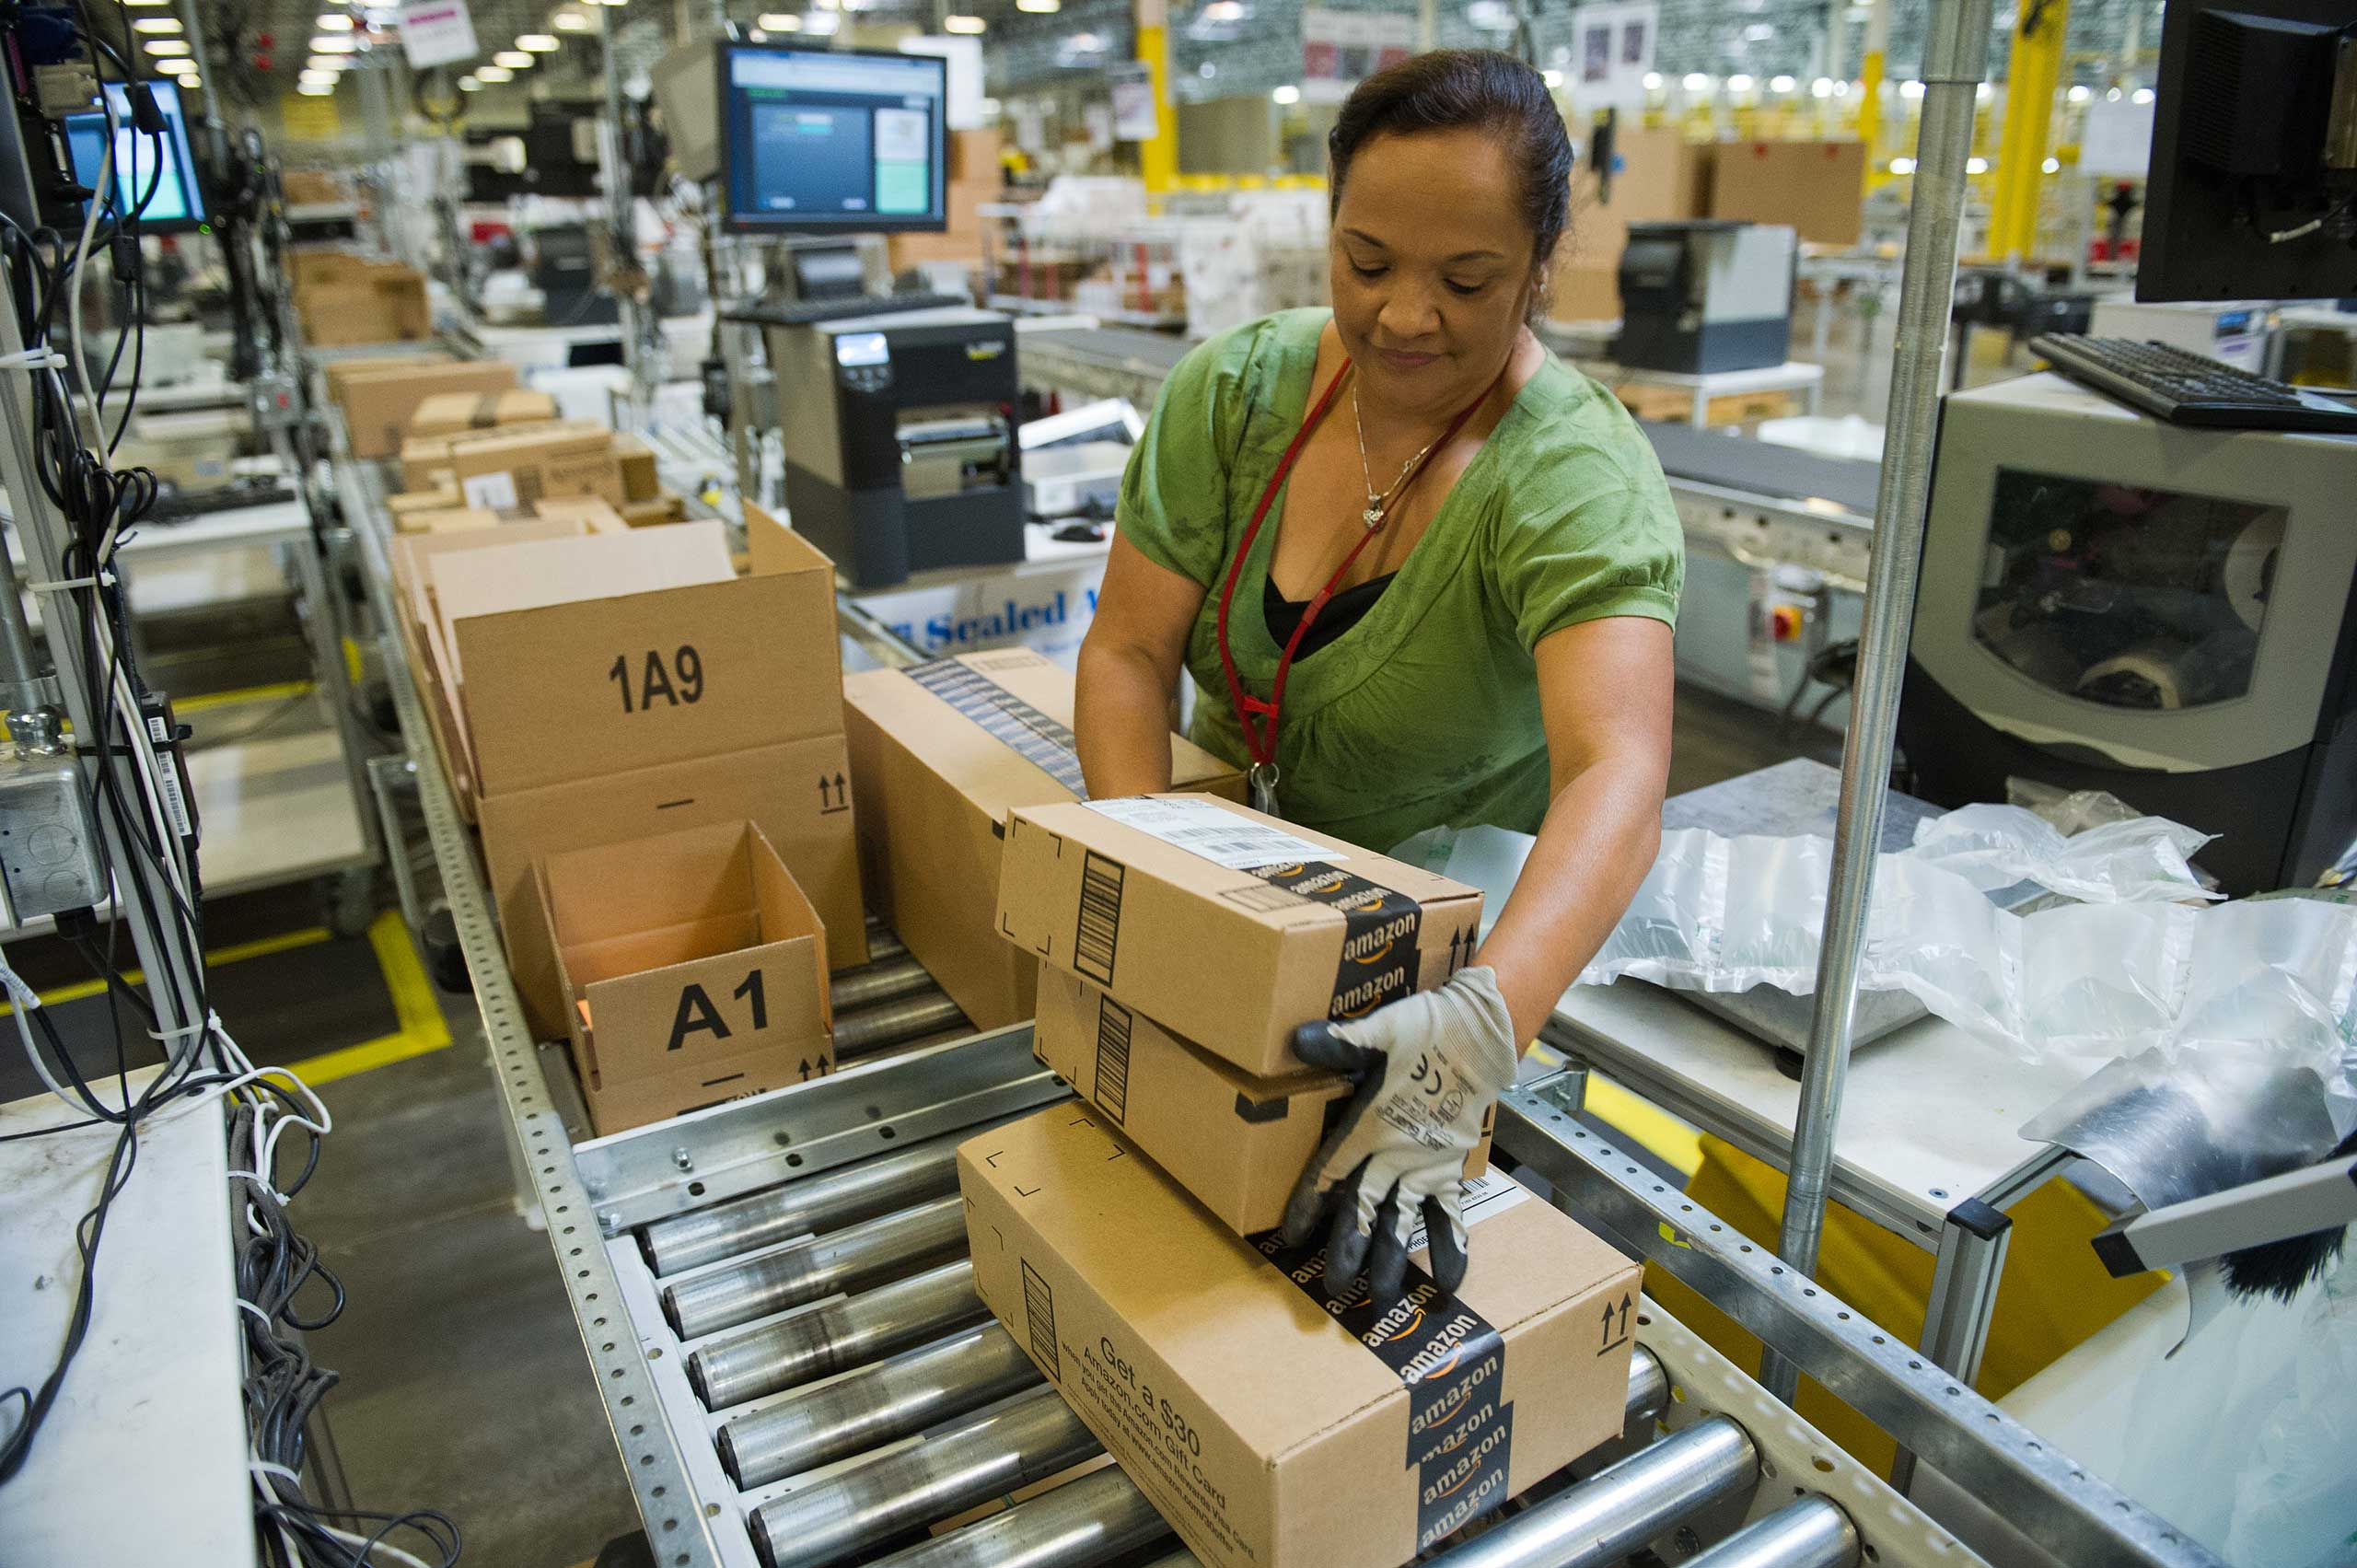 Employee Maria Miller loads boxes onto a conveyer belt for shipping at the Amazon.com Inc. distribution center in Phoenix, Arizona, U.S. on Monday, Nov. 26, 2012.